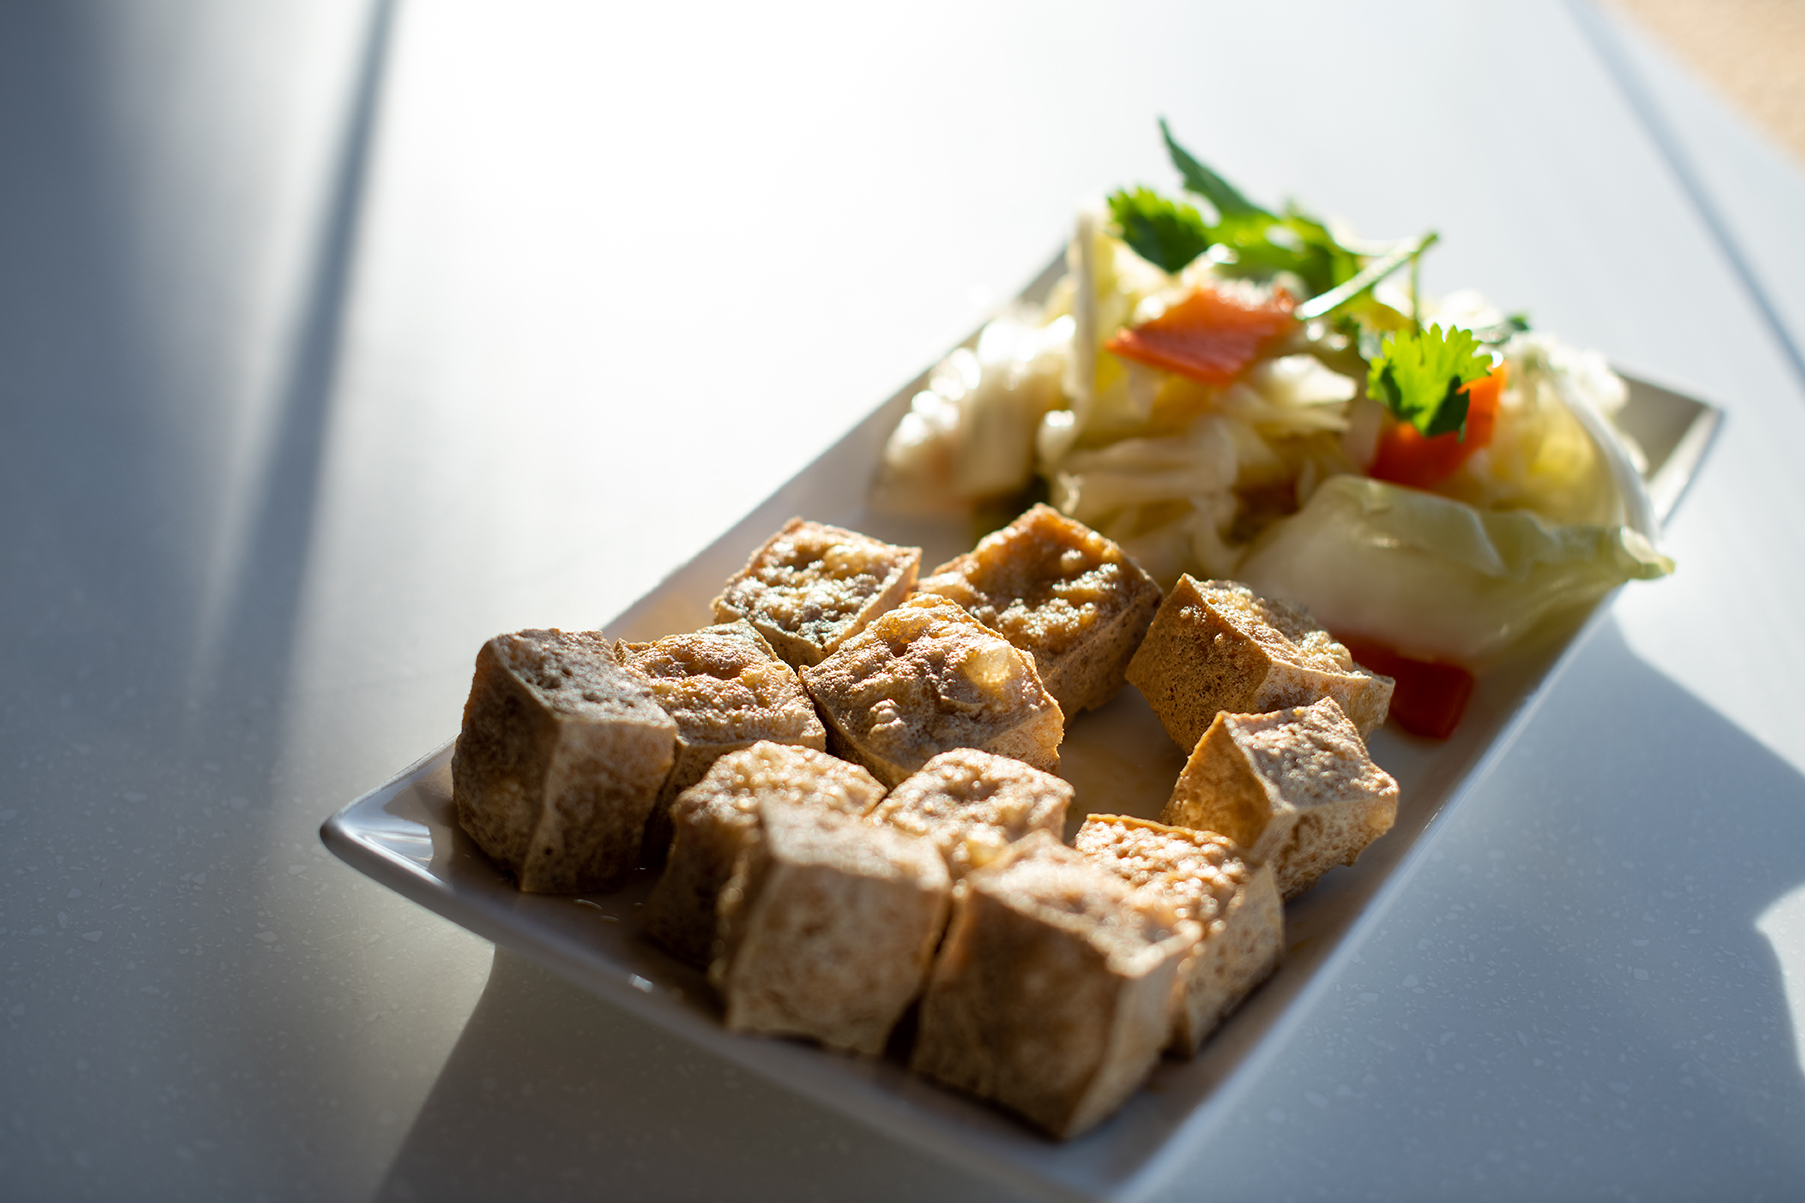 A plate of fried stinky tofu with a side of pickled cabbage on a white countertop.